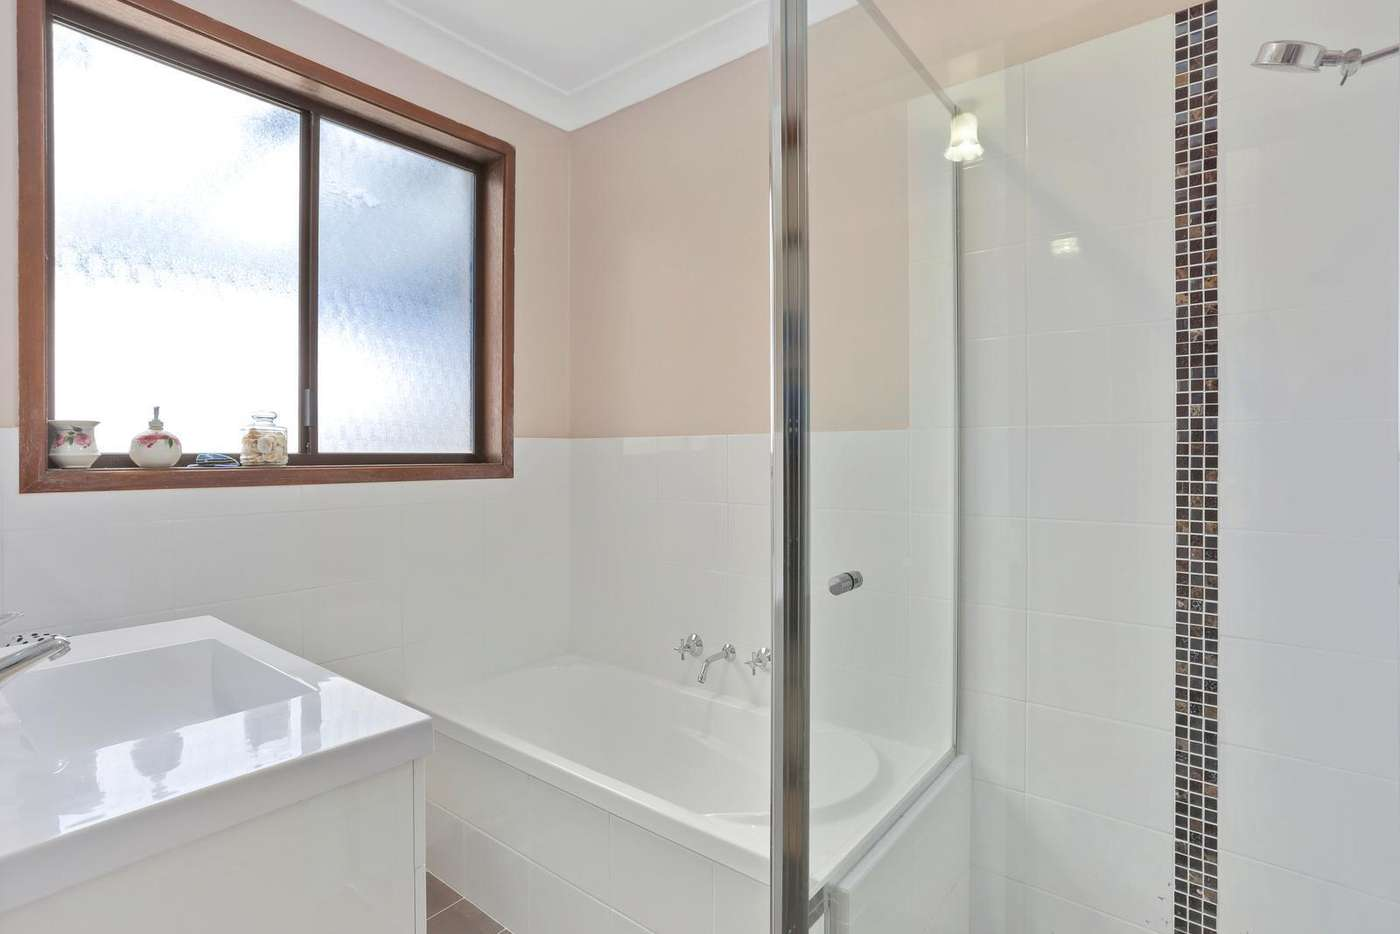 Sixth view of Homely house listing, 6 Roe Street, Moss Vale NSW 2577